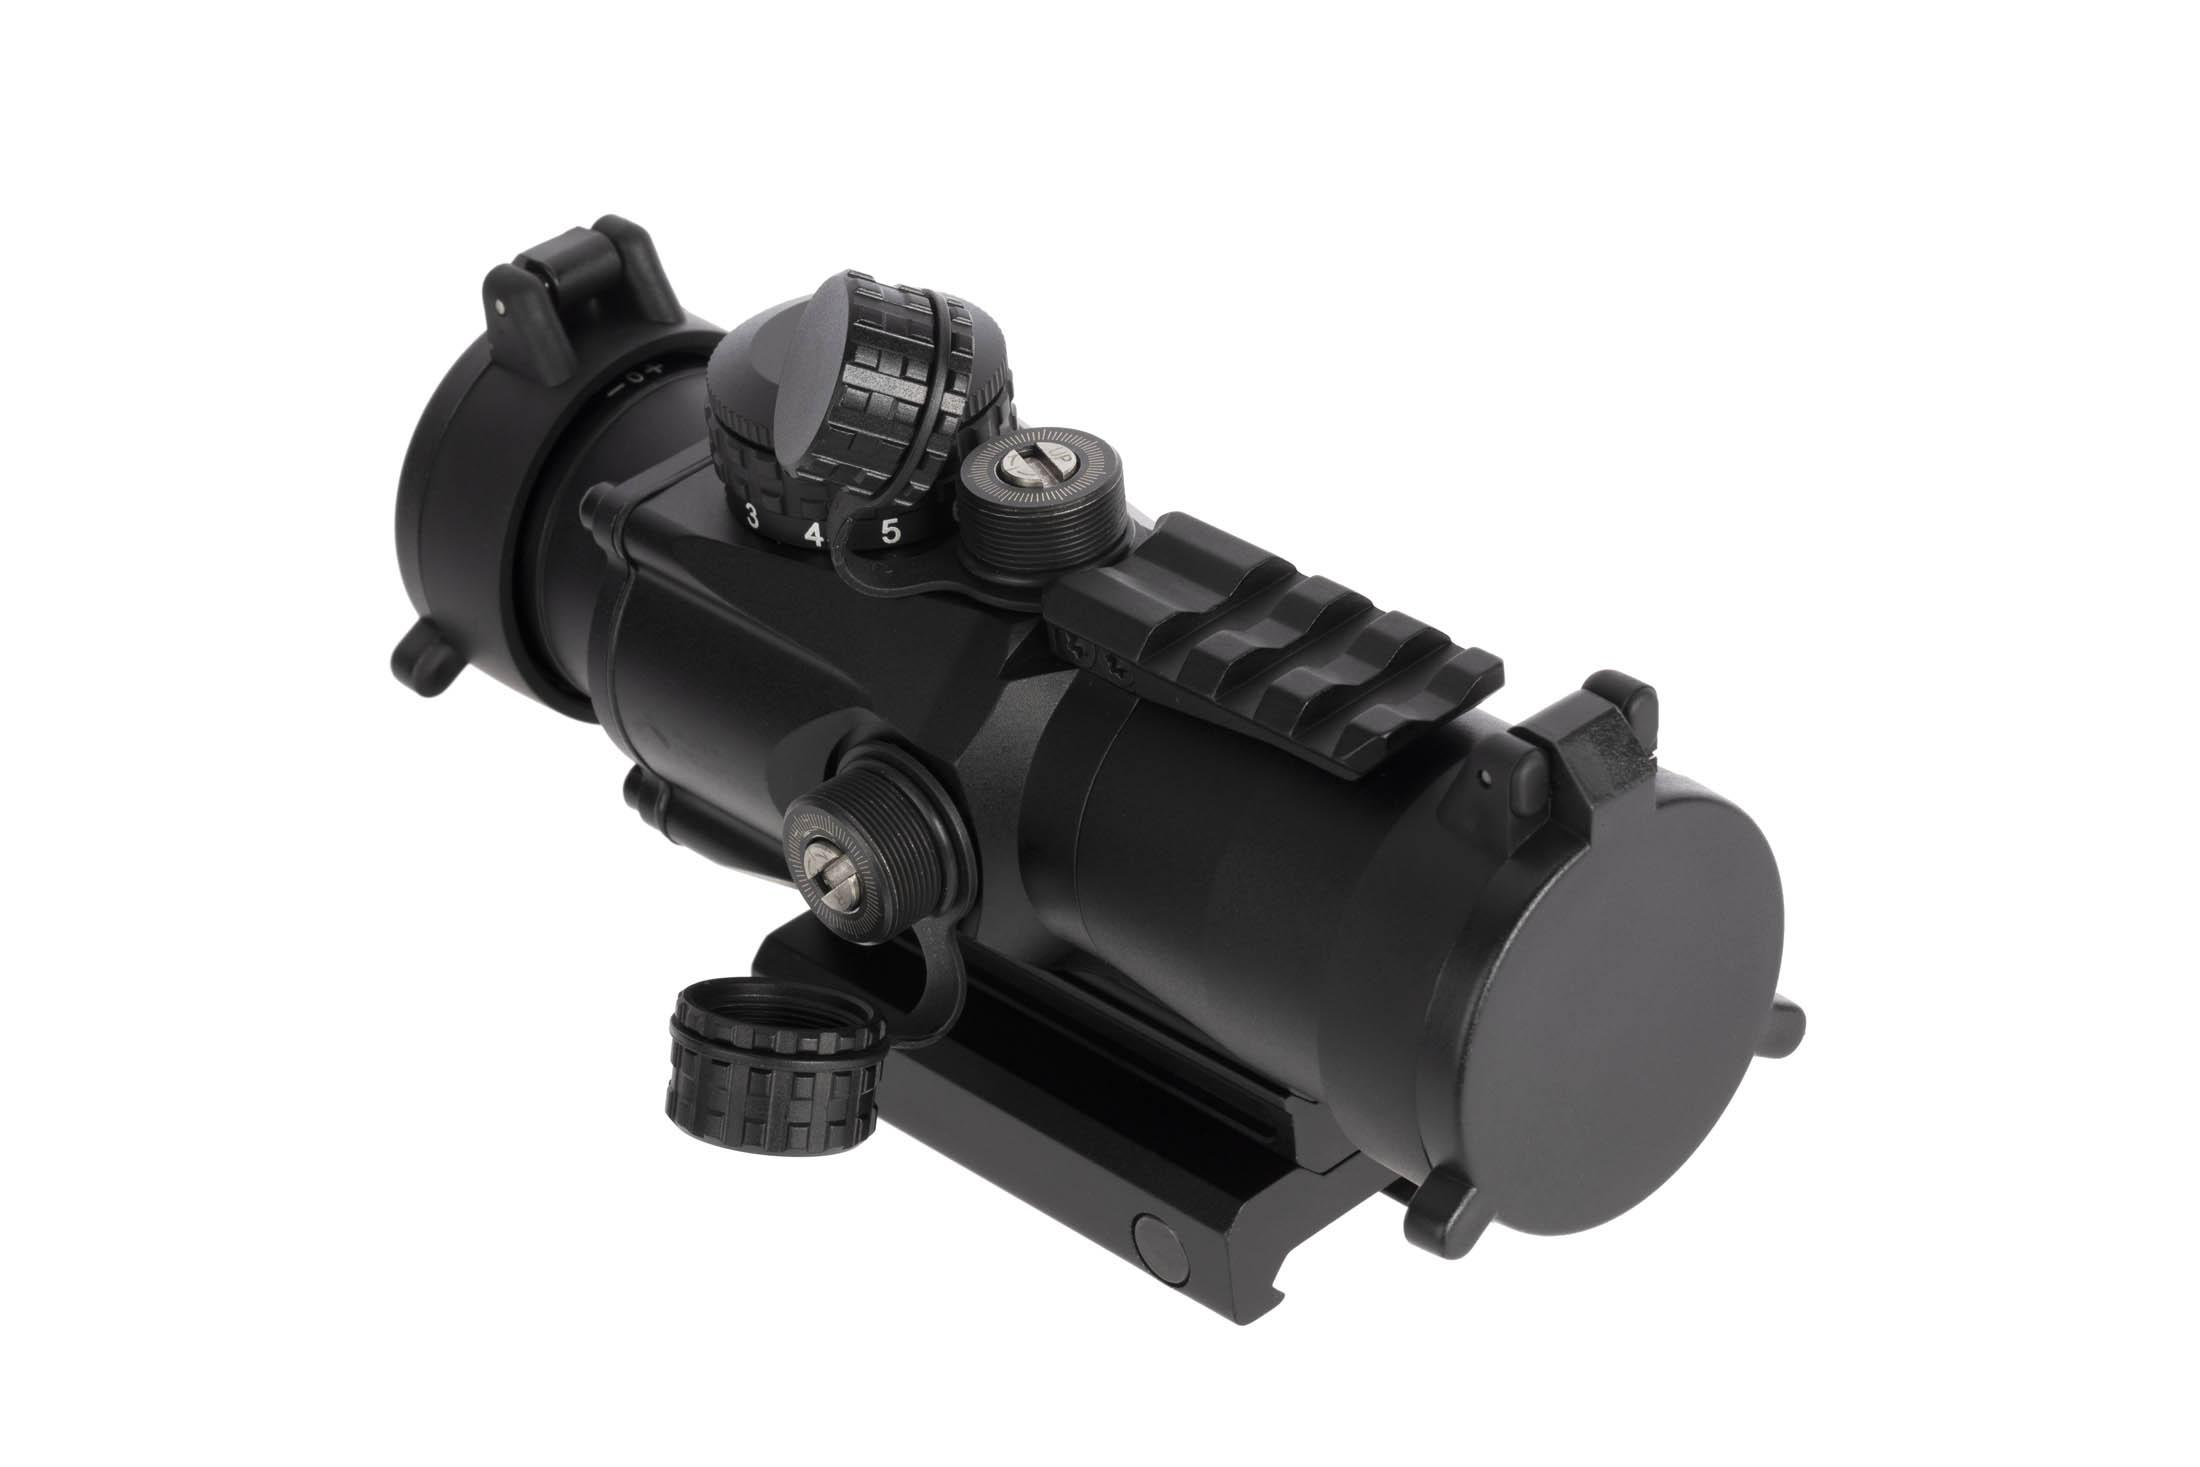 Primary Arms Compact 3X Prism Scope Gen 2 ACSS 5.56 CQB-M2 has a black finish with tool-adjust turrets